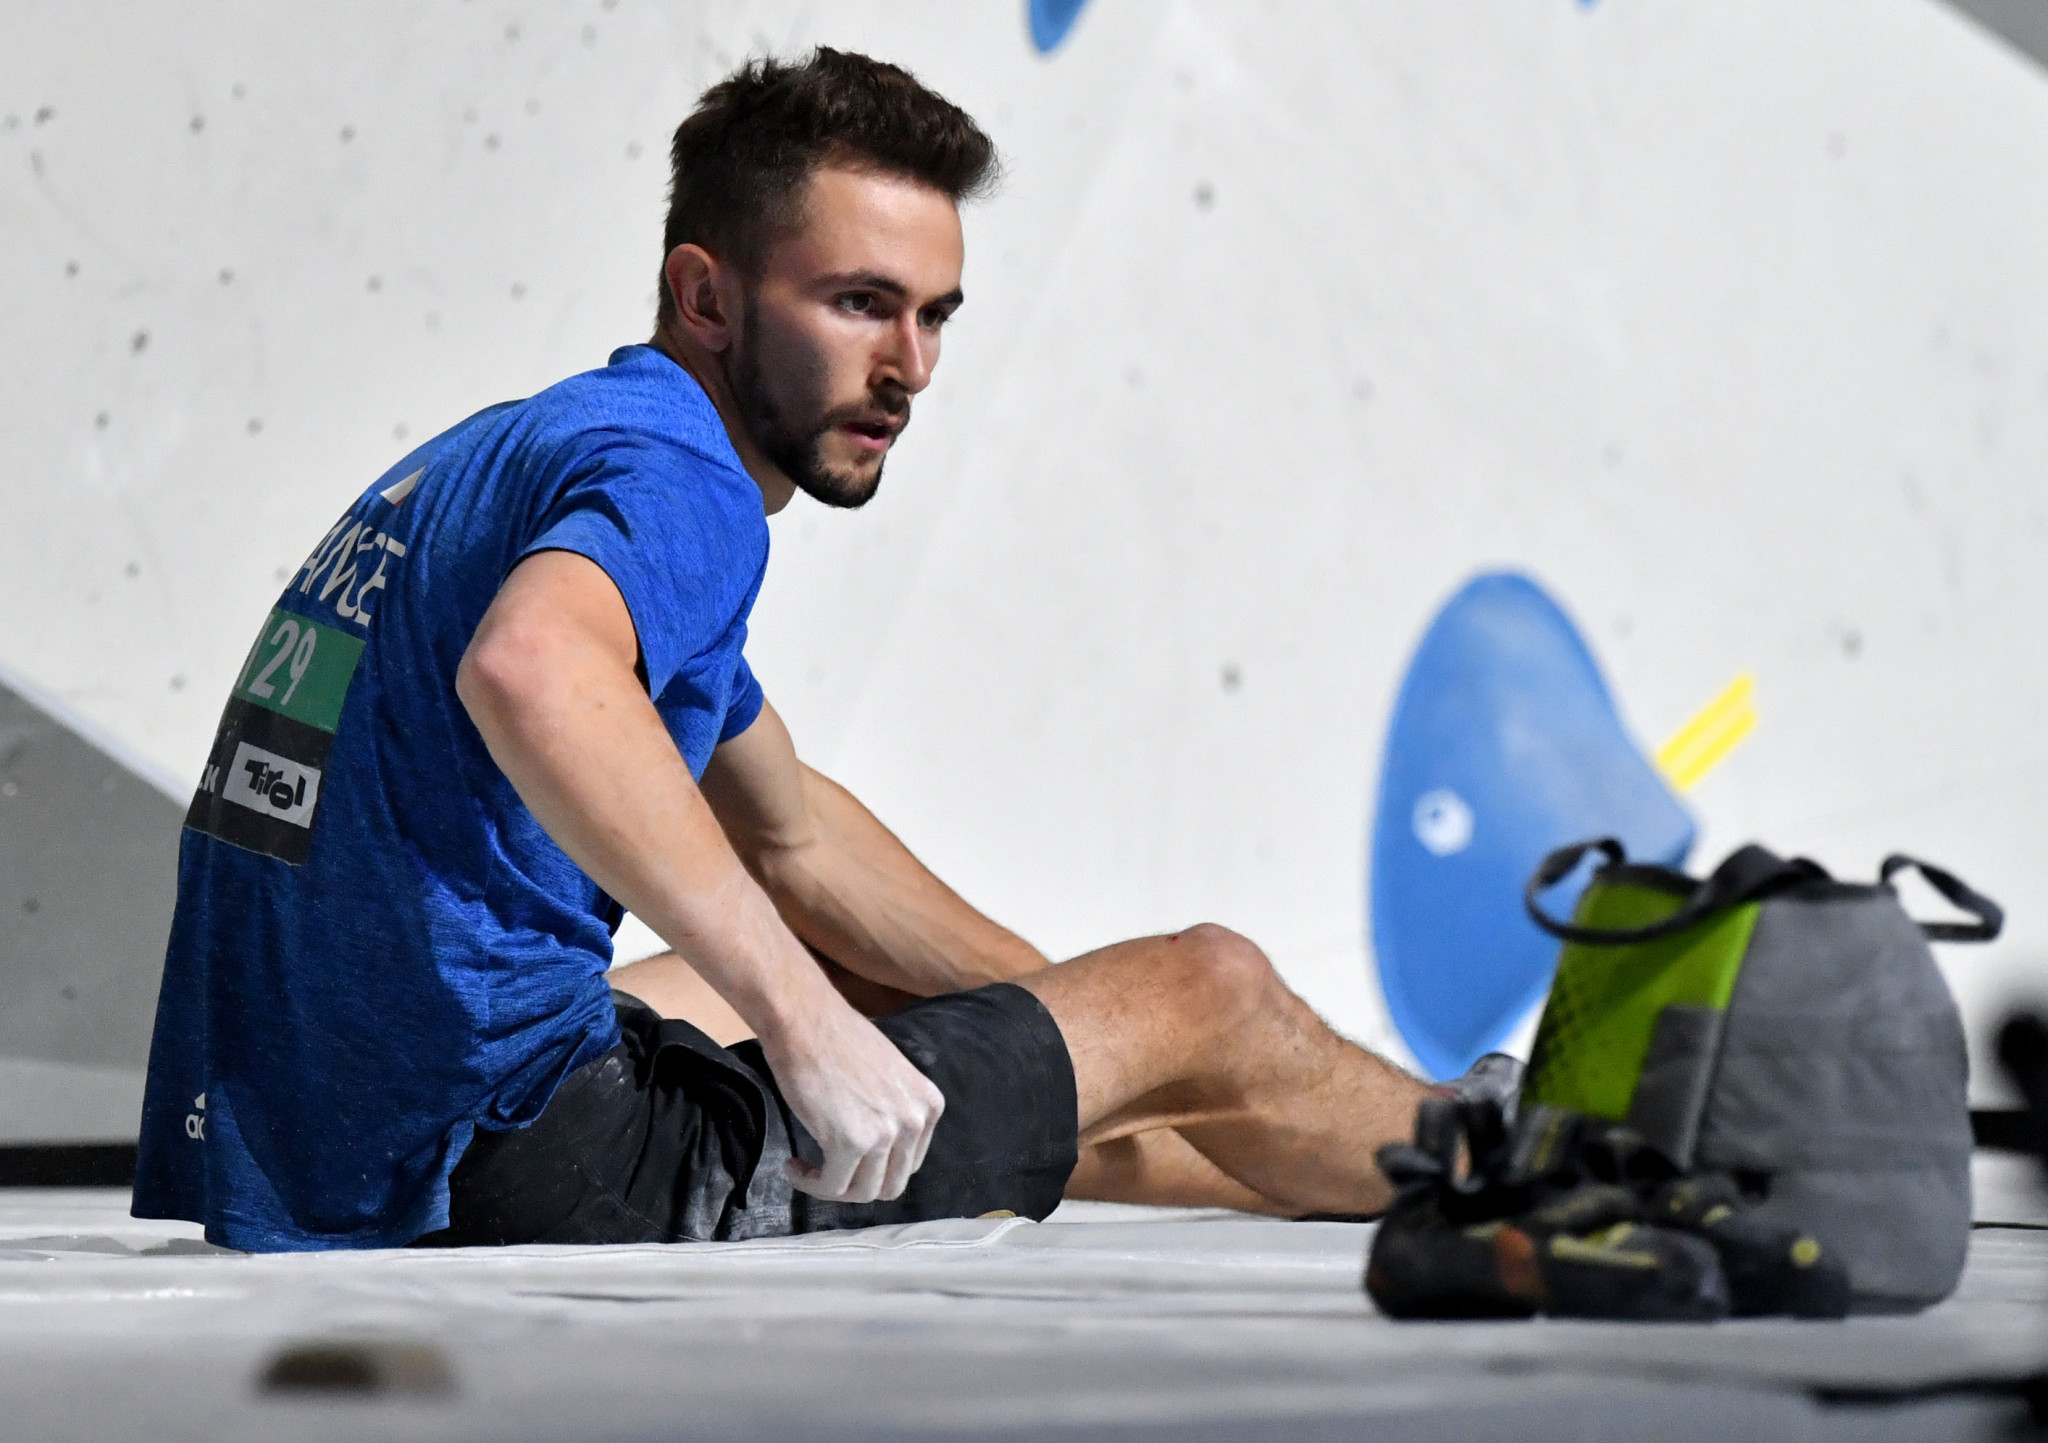 France's Manuel Cornu took his first title of the season at the IFSC World Cup in Chongqing ©Getty Images